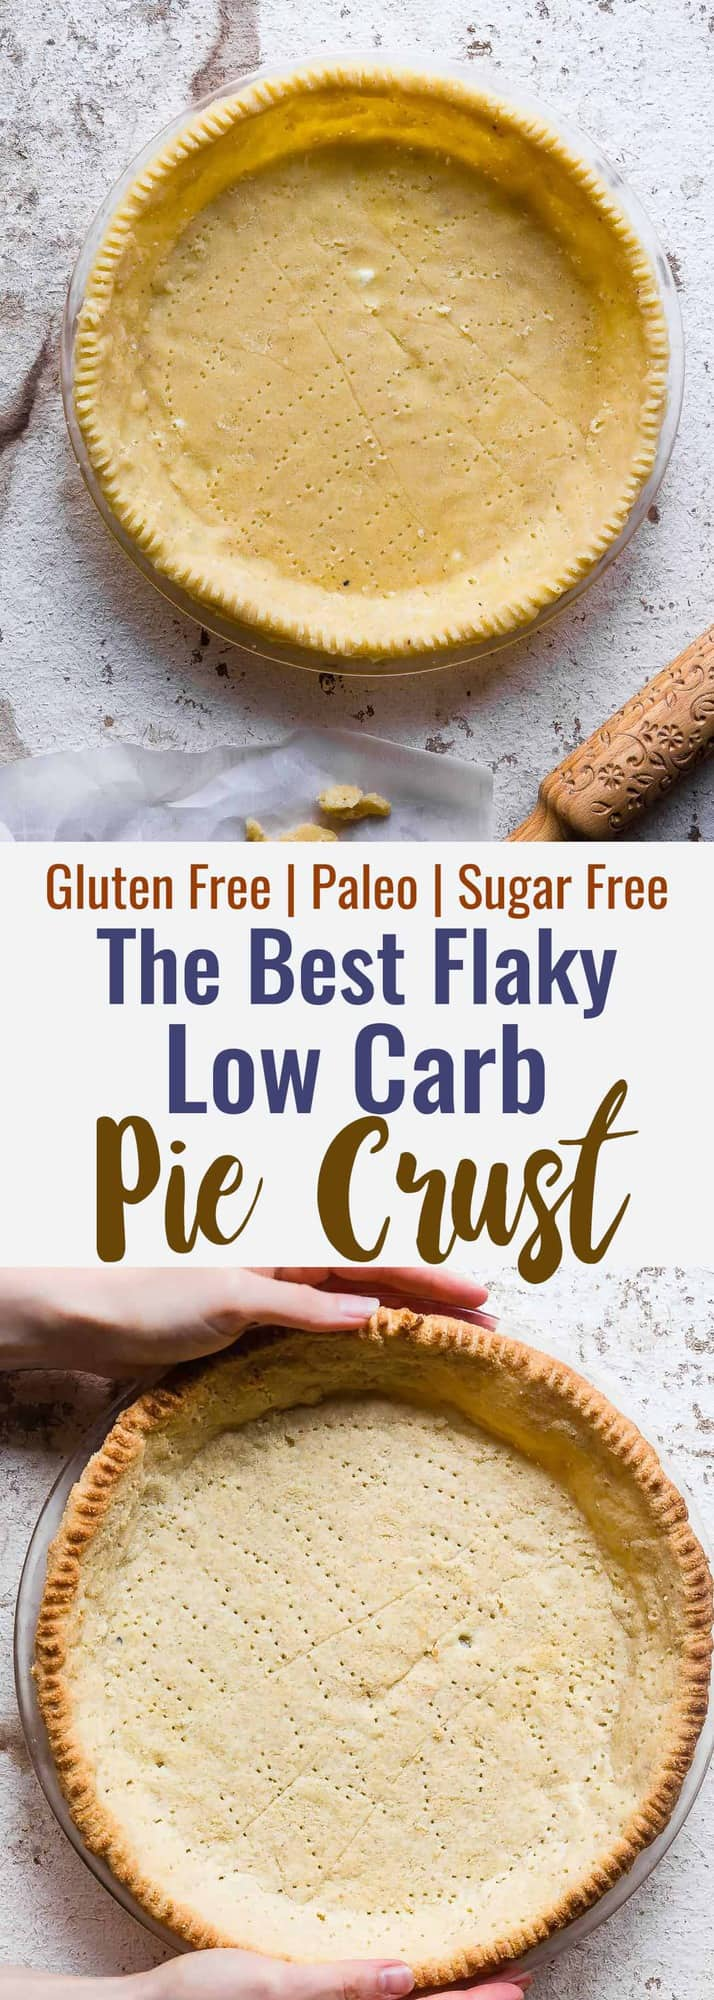 Low Carb Paleo Almond Flour Pie Crust - This is the BEST healthy pie crust ever! So tender, buttery and flaky that you will never know it's gluten free, sugar free and better for you! So easy to make too! | #Foodfaithfitness | #Glutenfree #Sugarfree #paleo #lowcarb #healthy